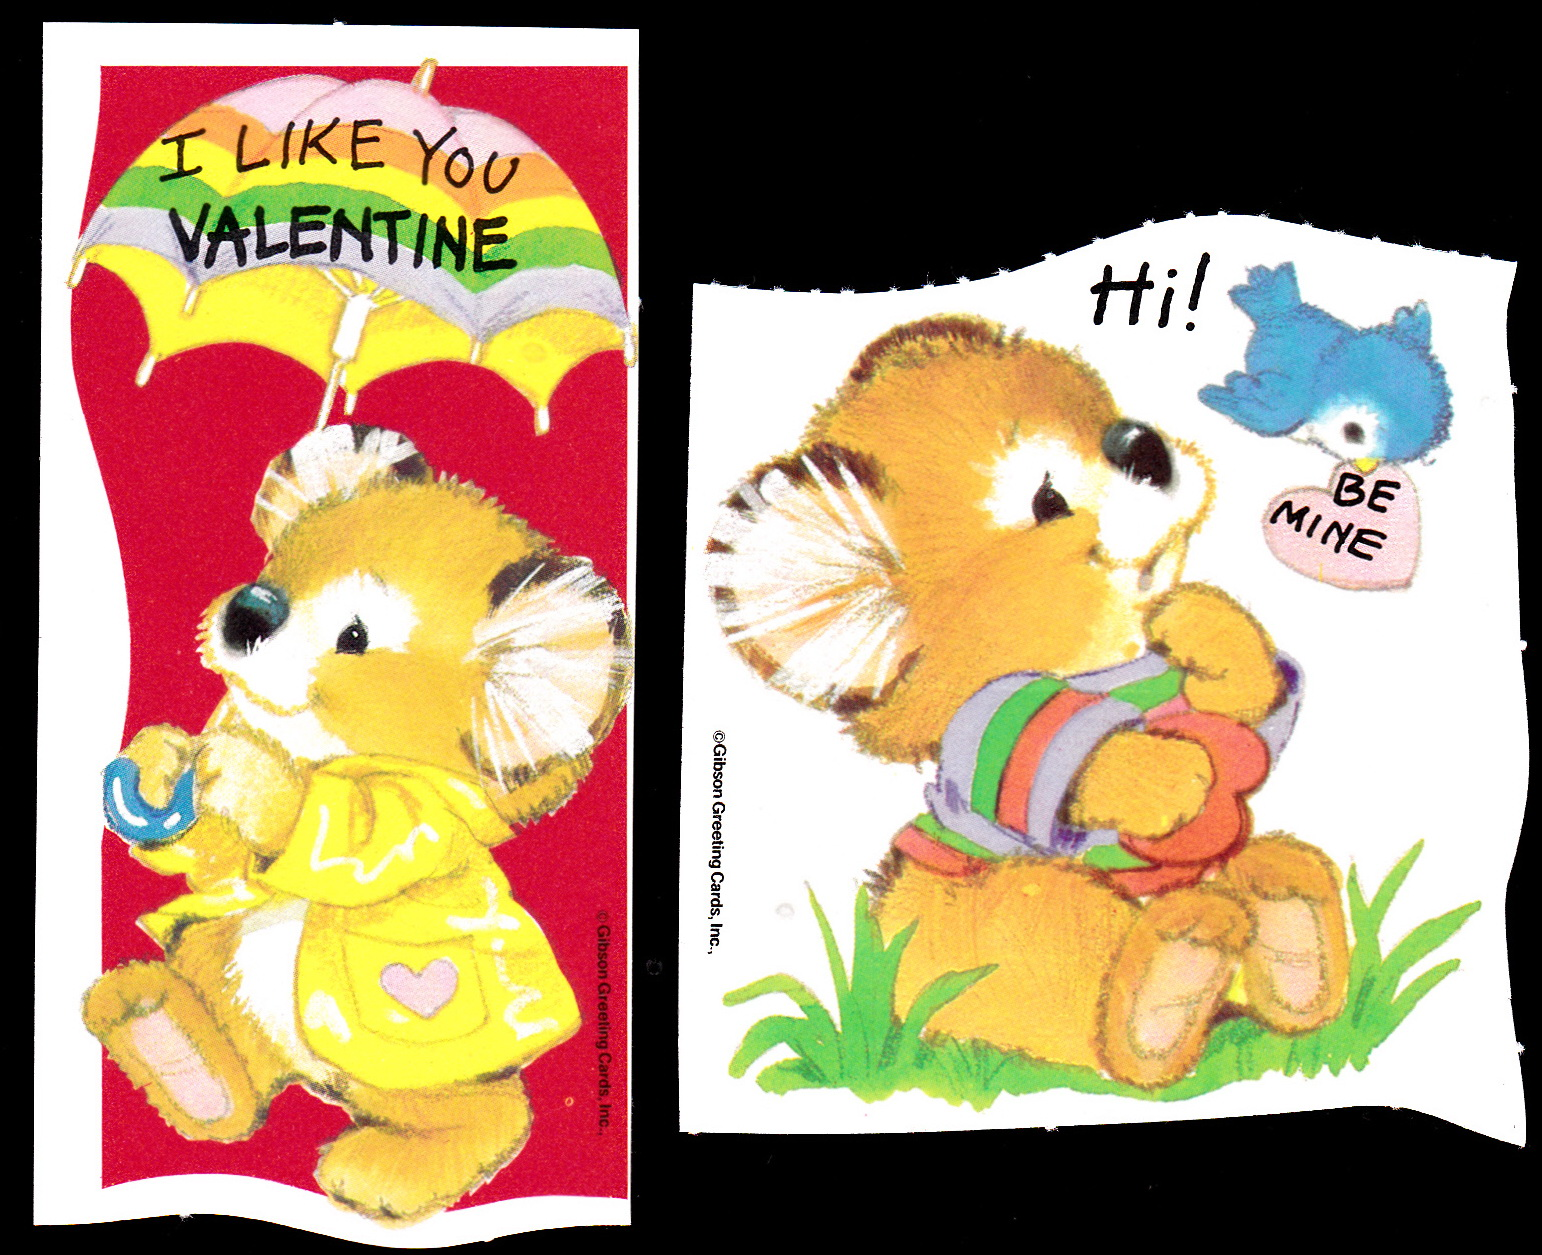 Vintage recycling 14 in 14 fourteen days of vintage valentines gibson greeting cards inc m4hsunfo Choice Image